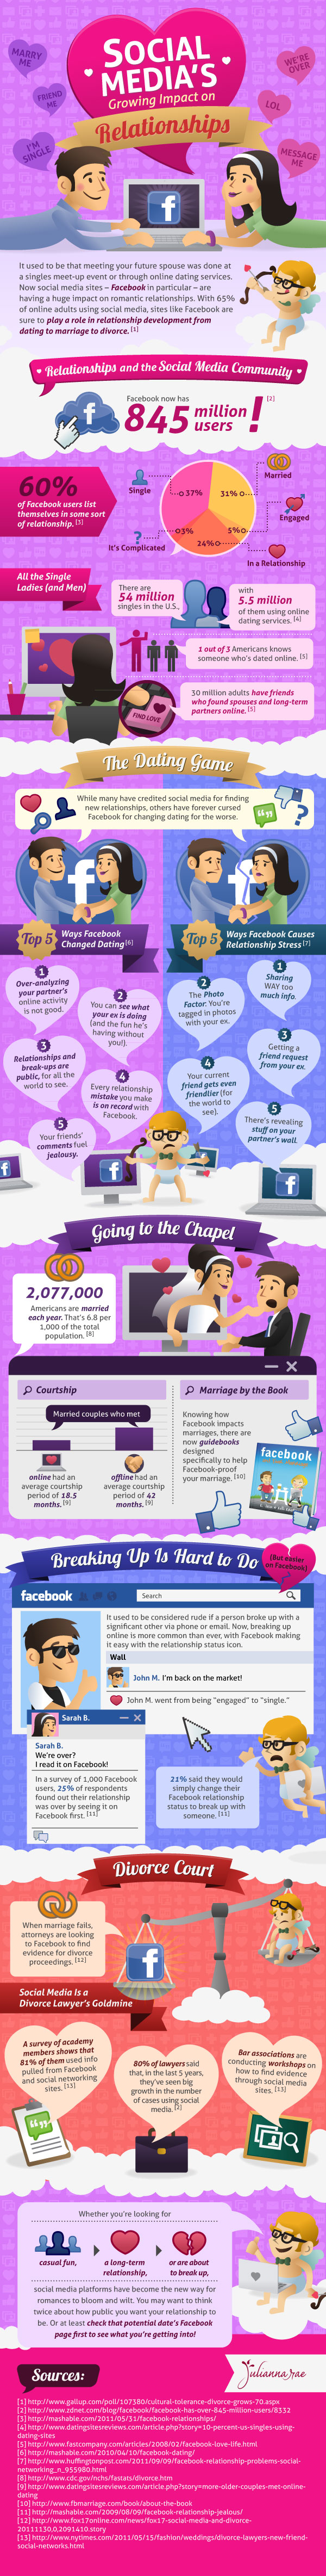 How has online dating changed society